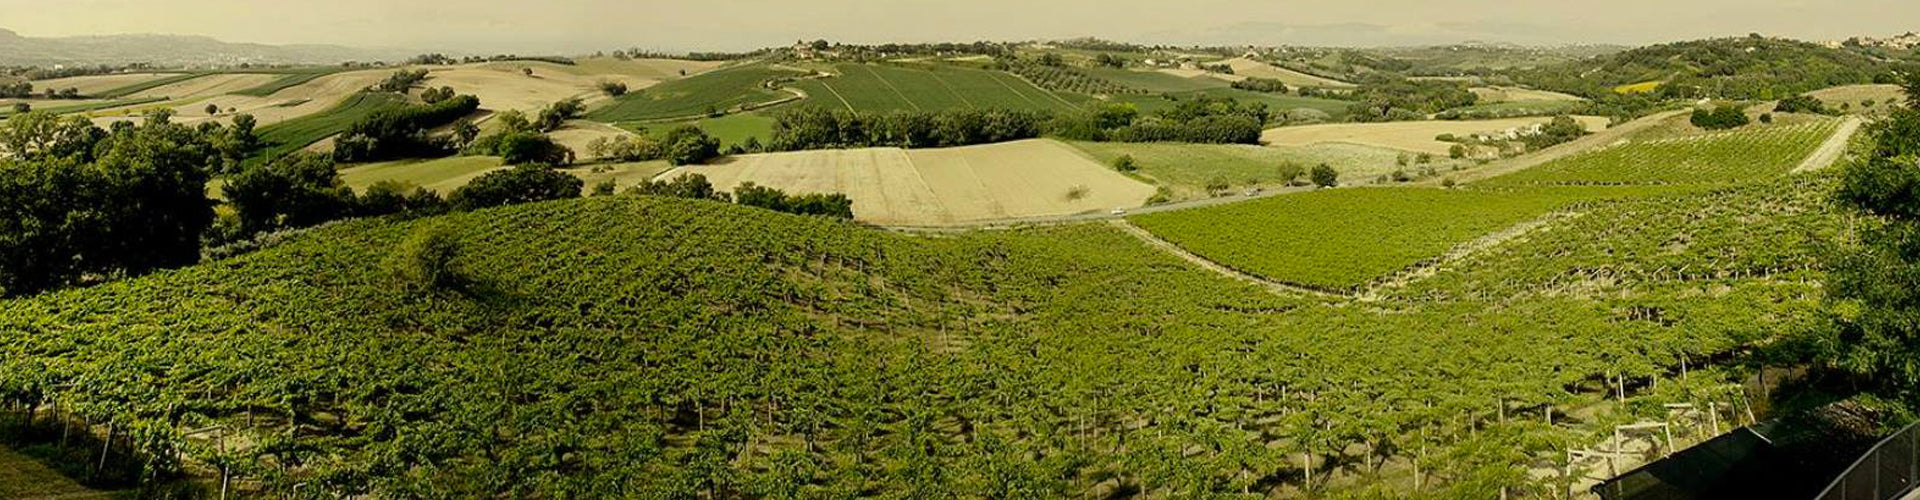 Fattoria La Valentina Vineyards in Italy's Abruzzo Wine Region